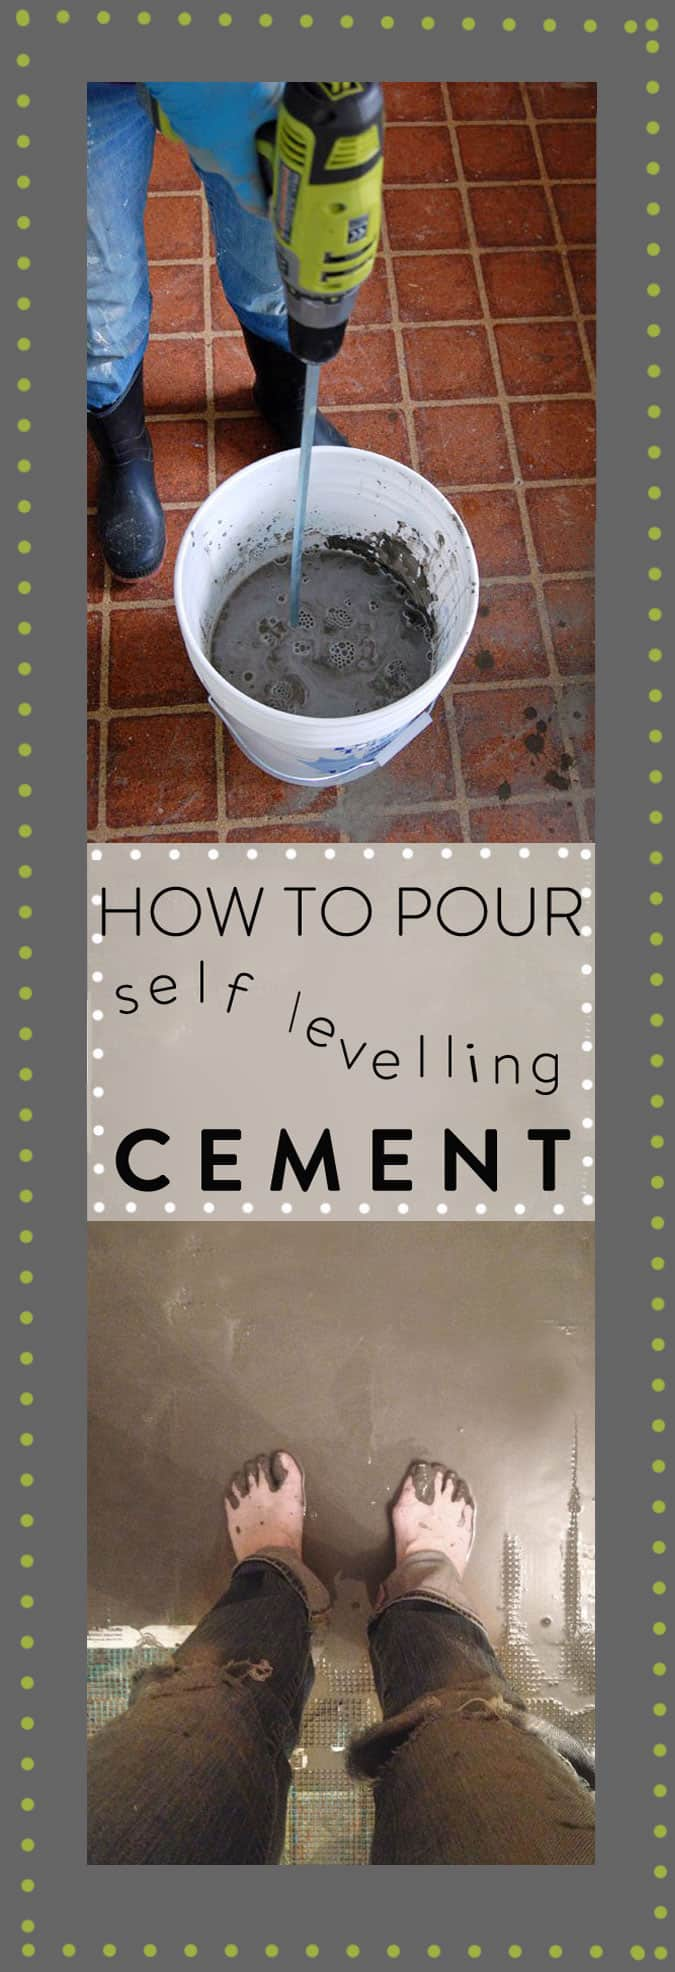 how-to-pour-self-levelling-cement-2